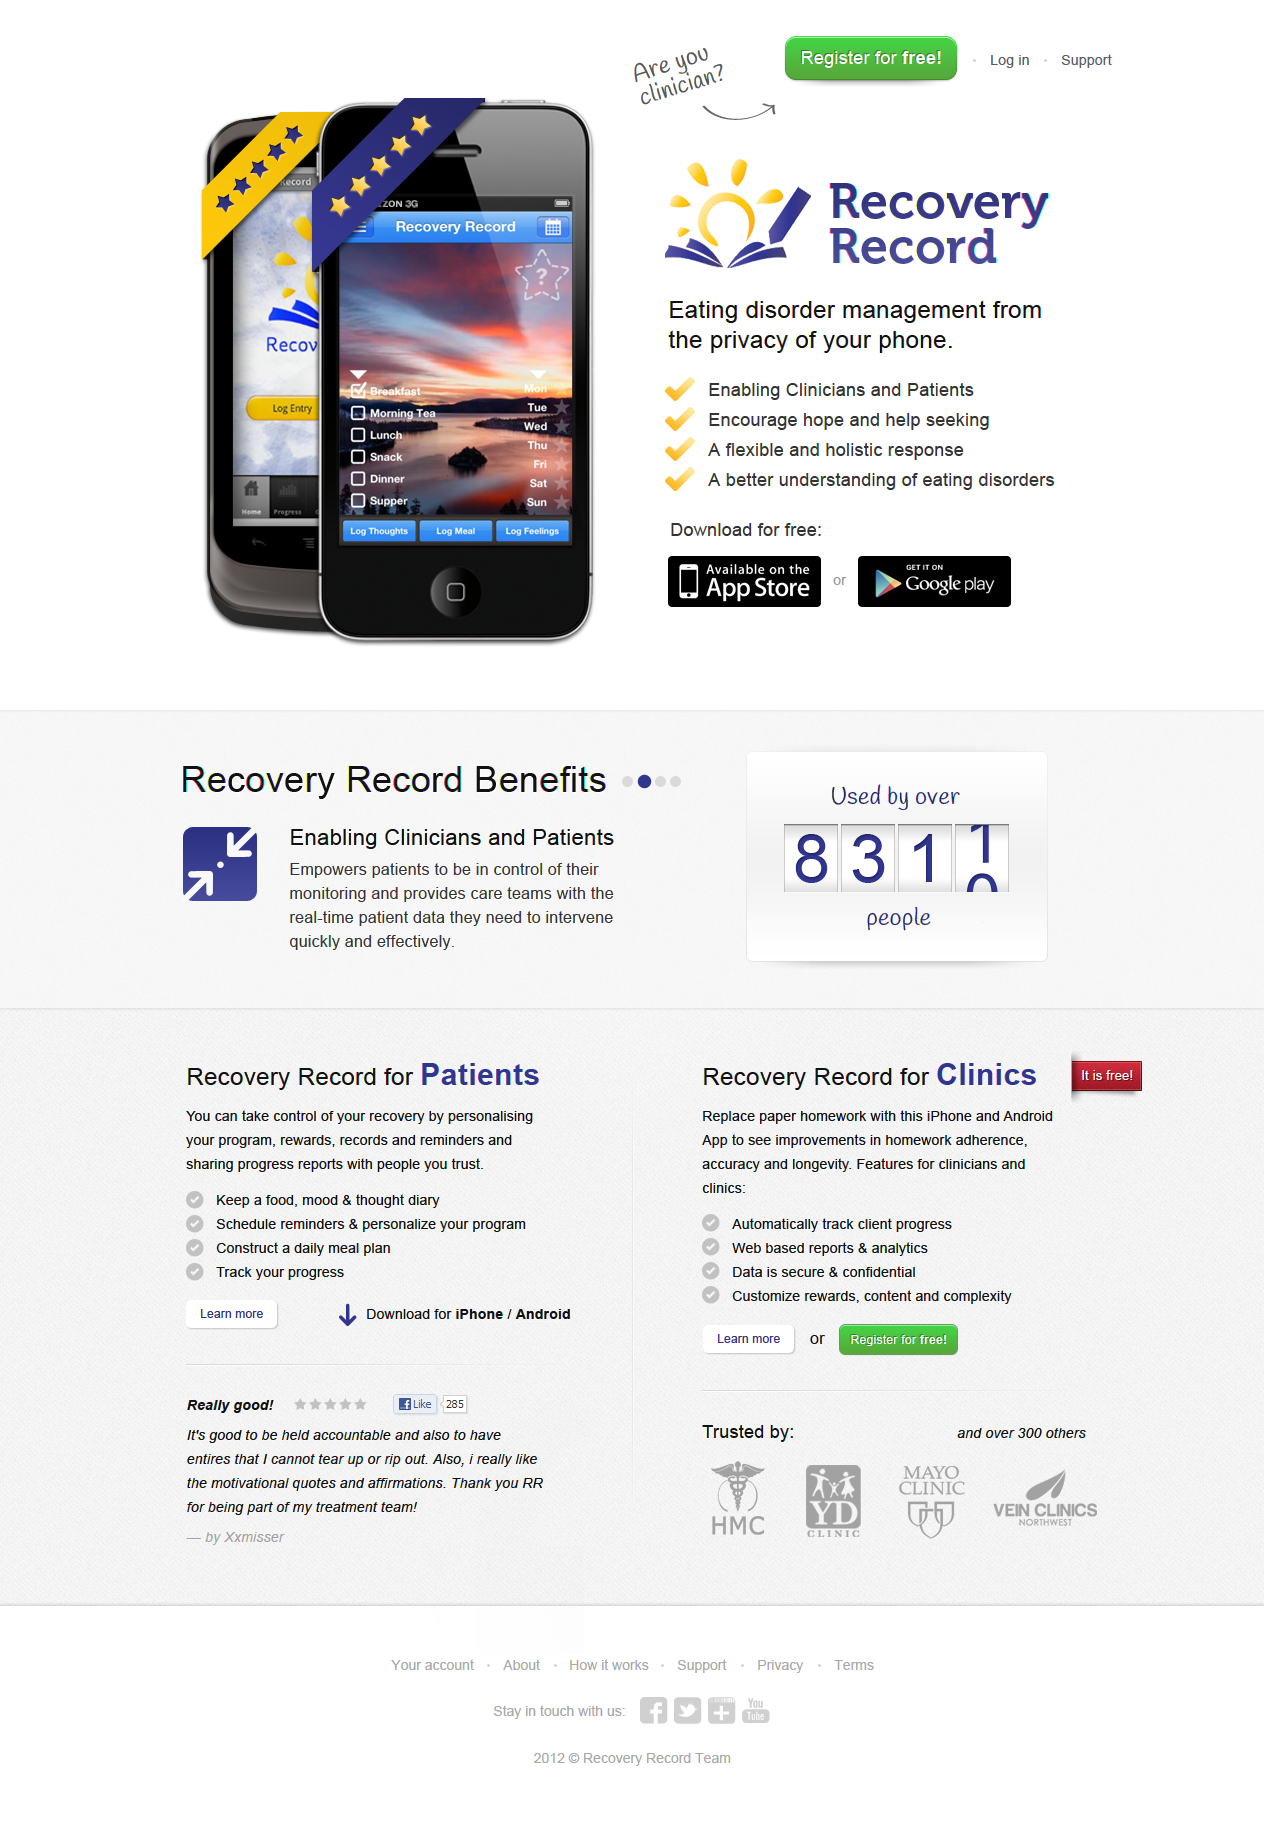 Recovery Record (Eating Disorder Management - iPhone/Android) needs a new landing page